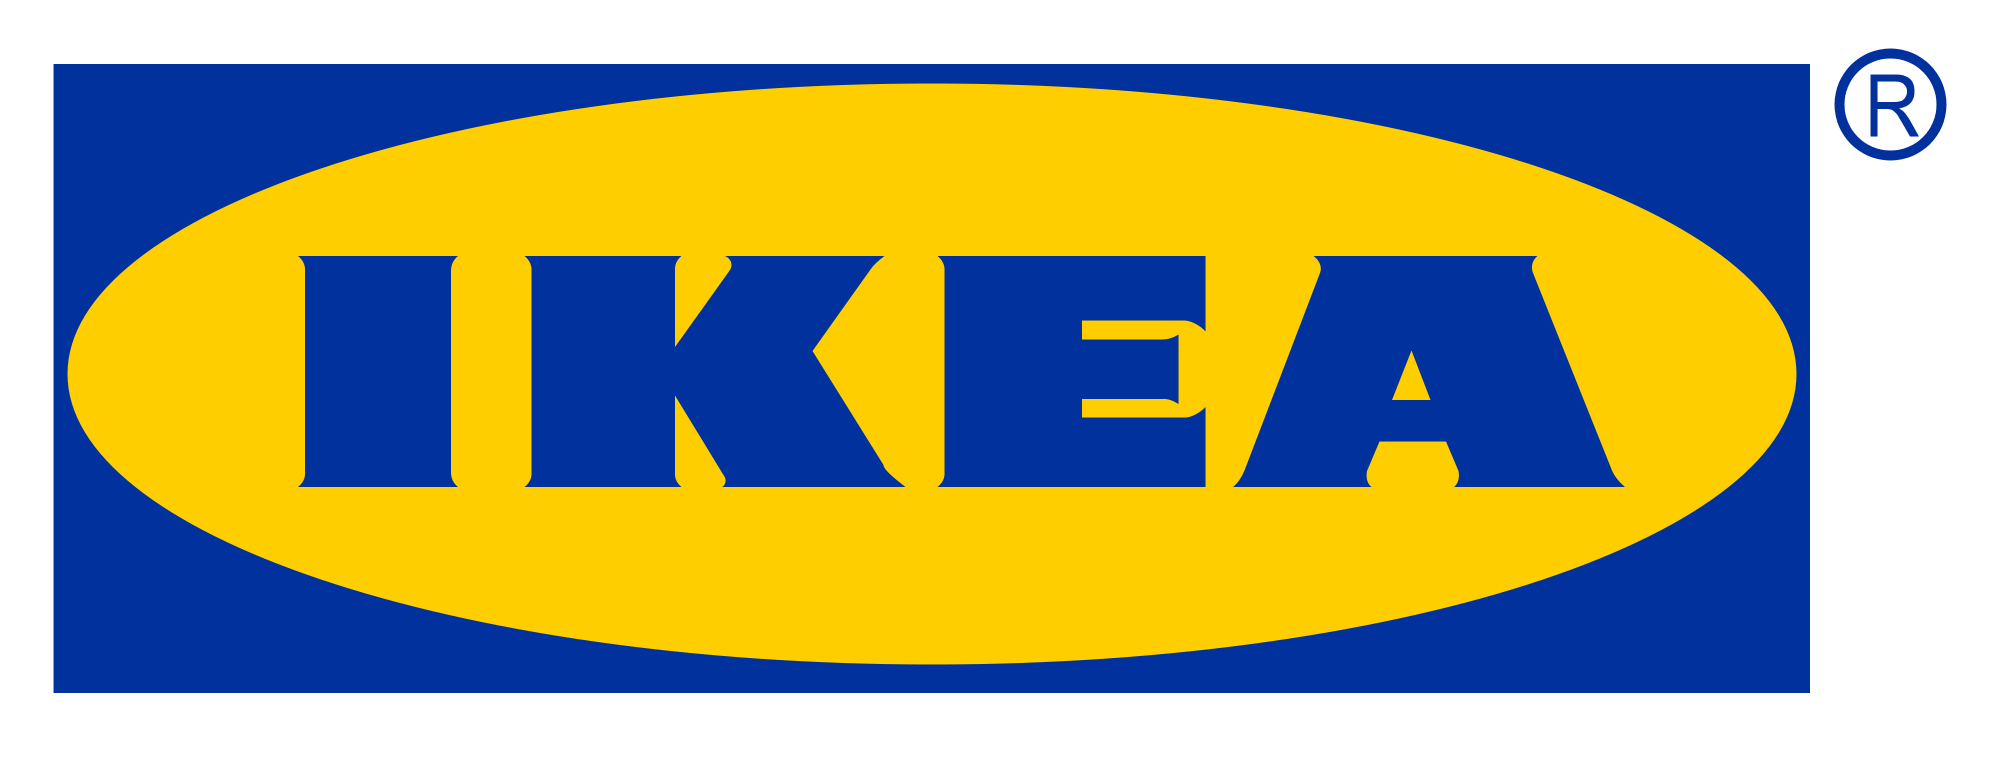 IKEA - Top 10 Best Furniture Companies in India